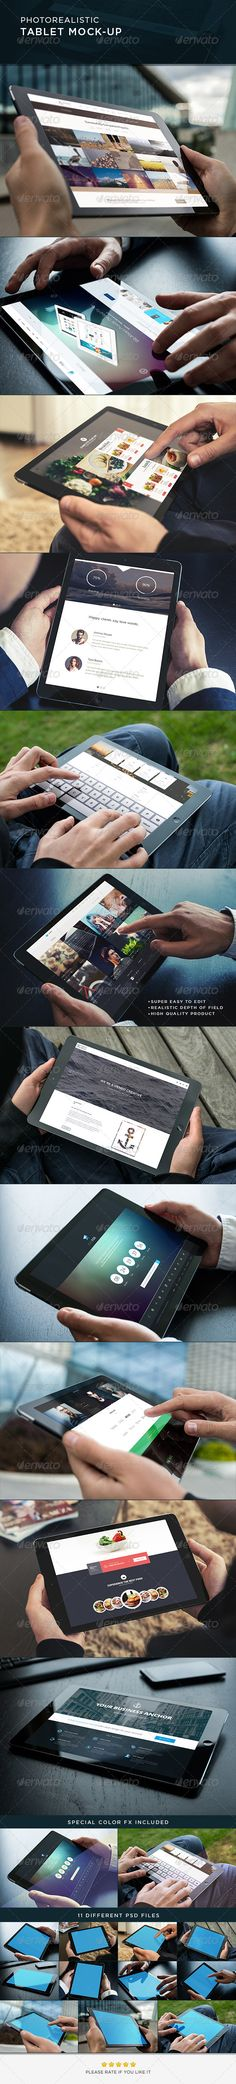 Photorealistic Tablet MockUp — Photoshop PSD #application #photo-realistic mockup • Available here → https://graphicriver.net/item/photorealistic-tablet-mockup/8765380?ref=pxcr